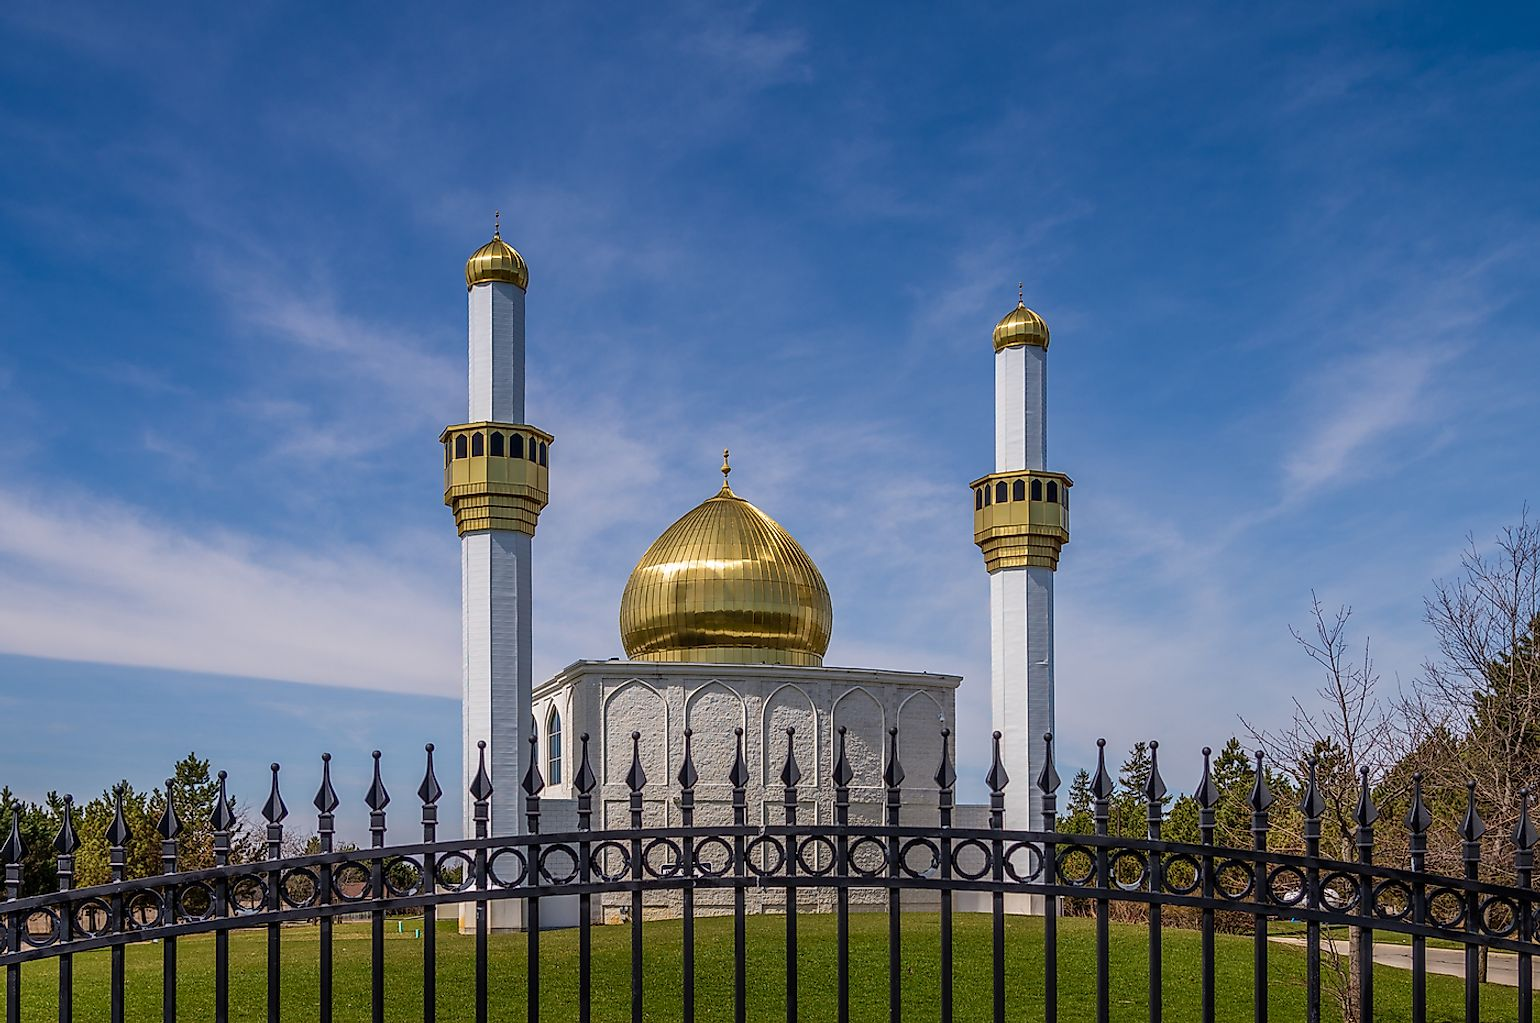 The mosque at the Al Hussain Foundation in Markham Ontario Canada. Image credit: Ken Felepchuk/Shutterstock.com